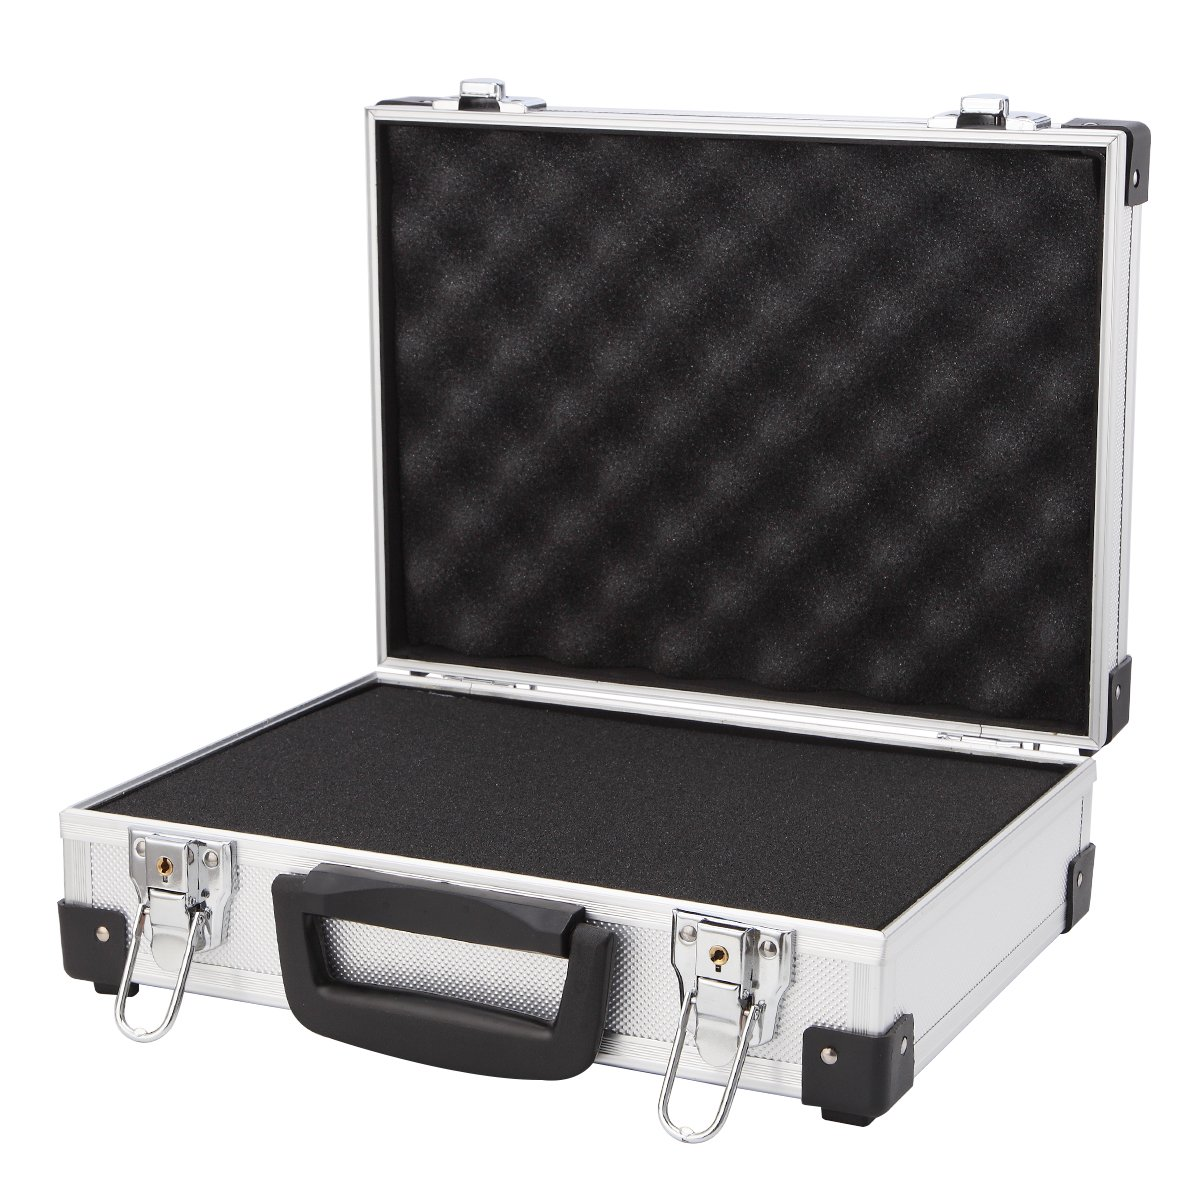 Professional Aluminum Hard Hand Gun Cases Office File Briefcase Outdoor Travel Flight Cases Home Tool Boxes with Quick Locks